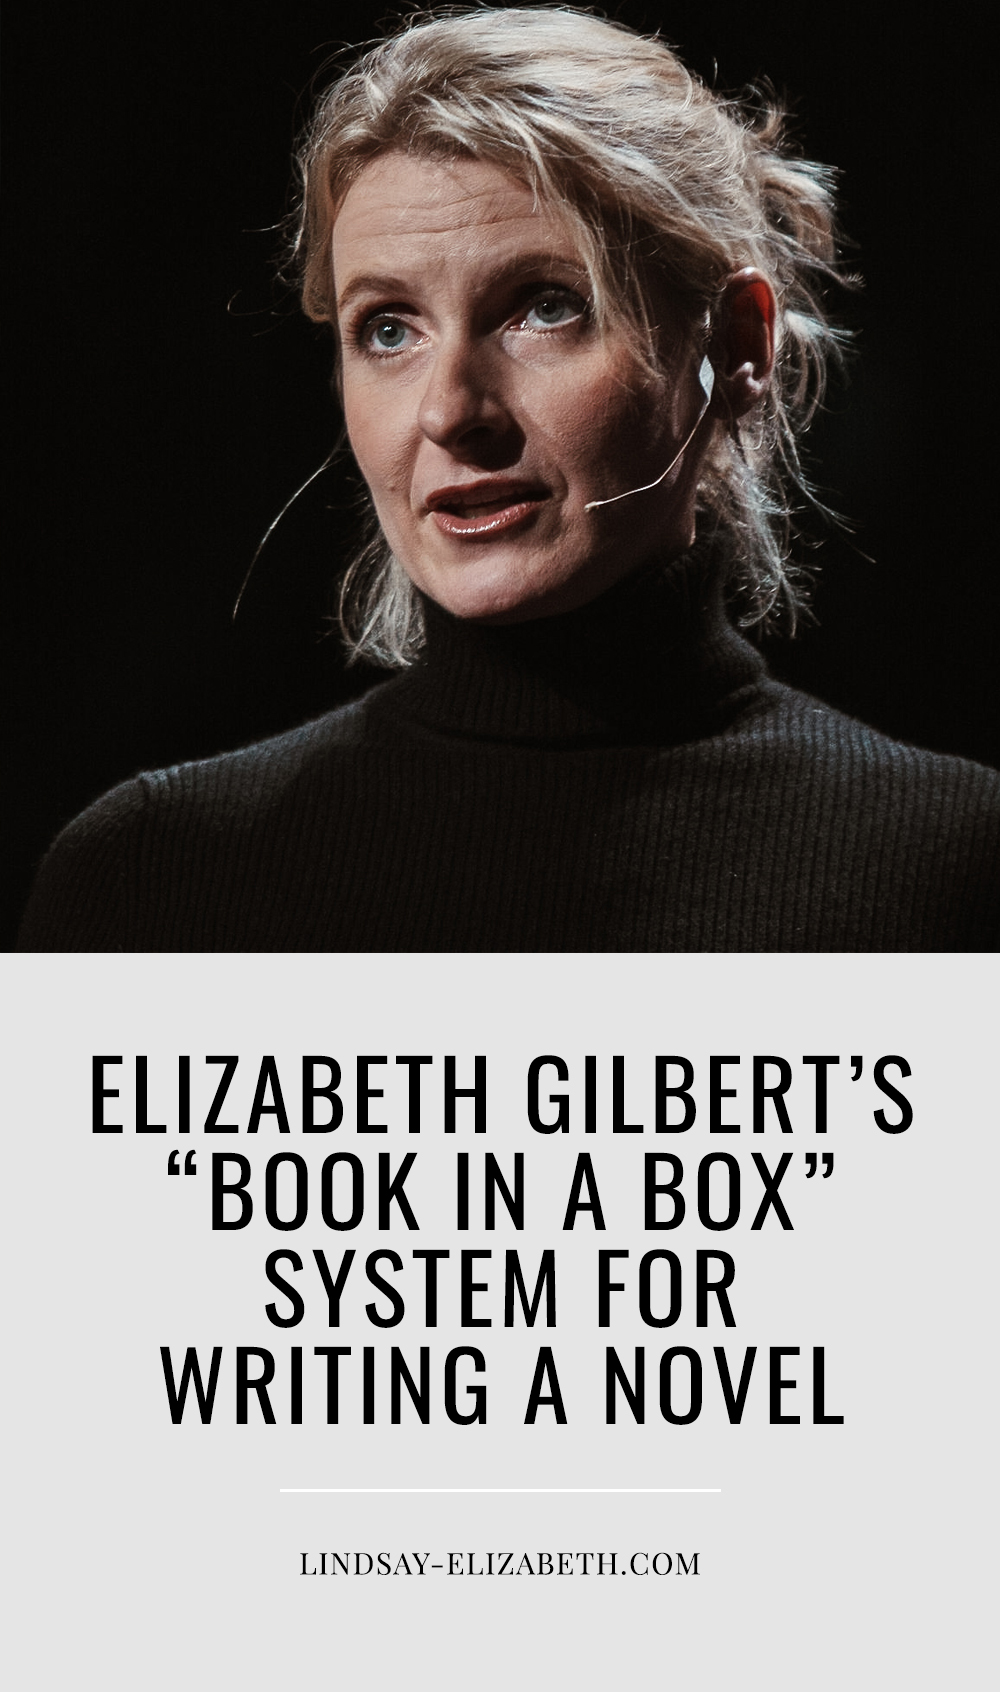 Elizabeth Gilbert has developed an easy note-taking system for writing a novel based on a method she learned from a teacher when she was 14 that helps her avoid writer's block and keep all of her extensive research and ideas organized in an efficient way. Looking for a better way to keep track of your novel's notes and research? Her system might be perfect for you!